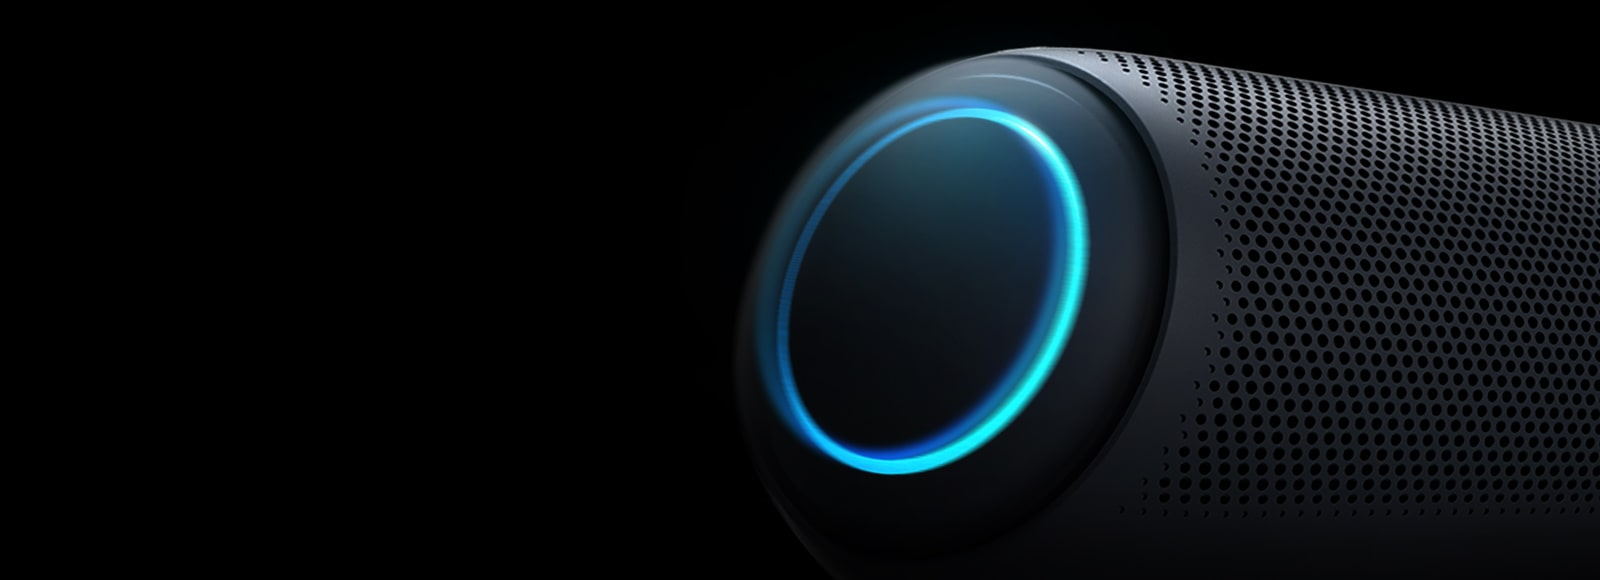 On a black background, There is a close-up of LG XBOOM Go's left woofer with sky-blue lighting.